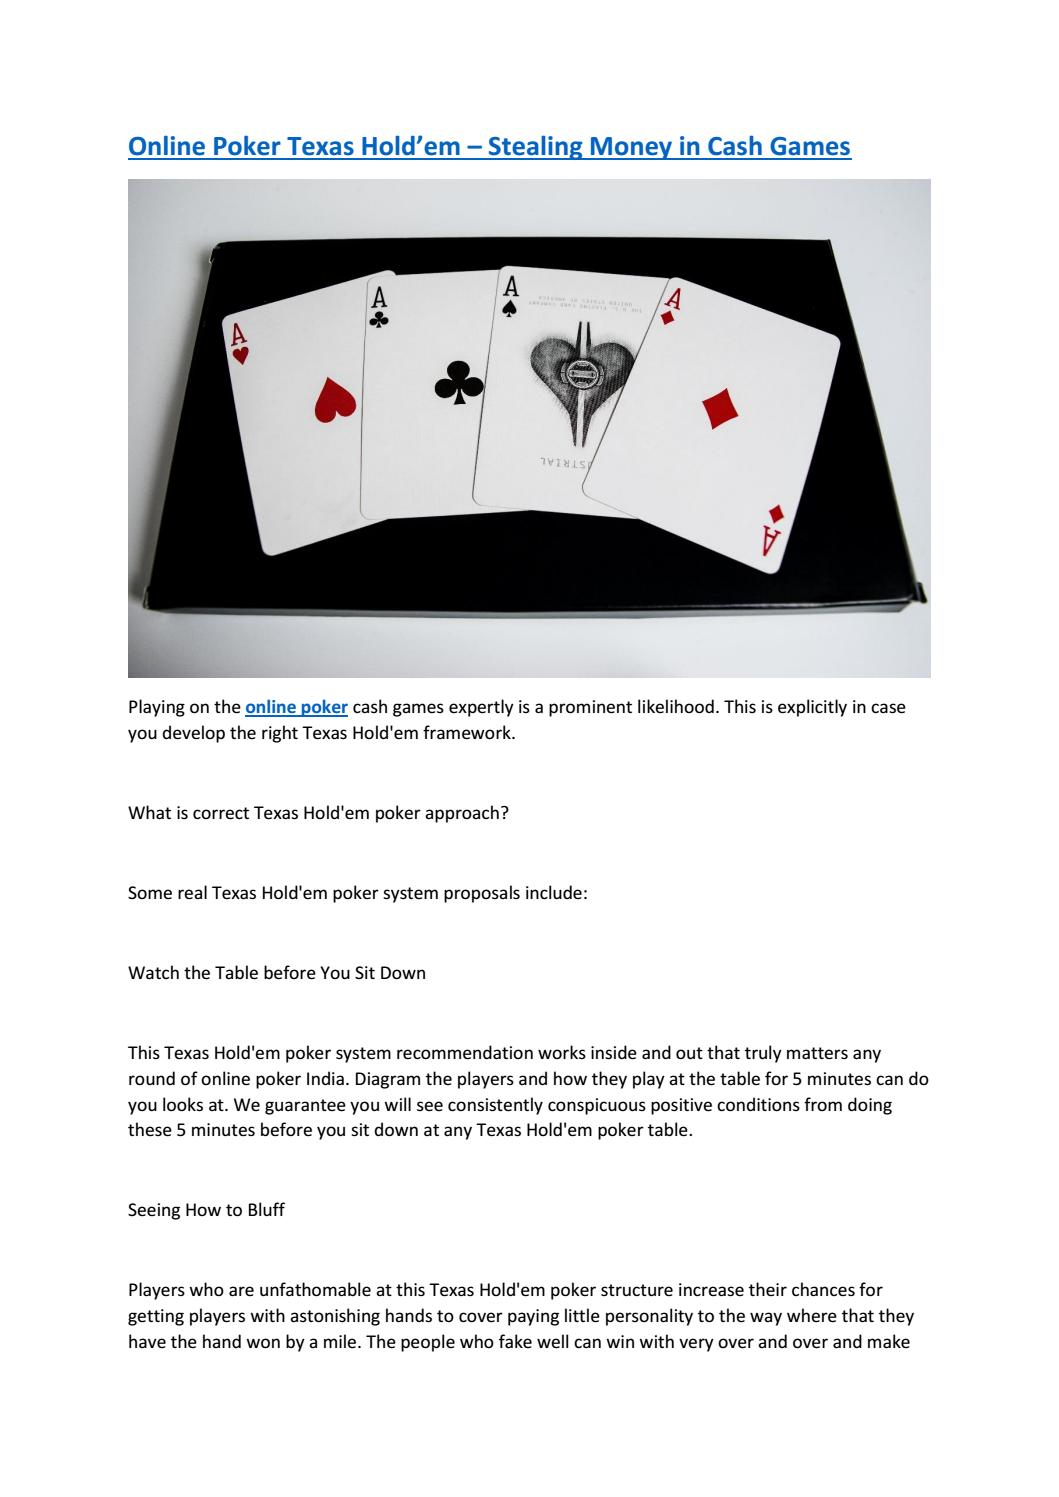 Online Poker Texas Hold Em Stealing Money In Cash Games By Pokerlion Issuu